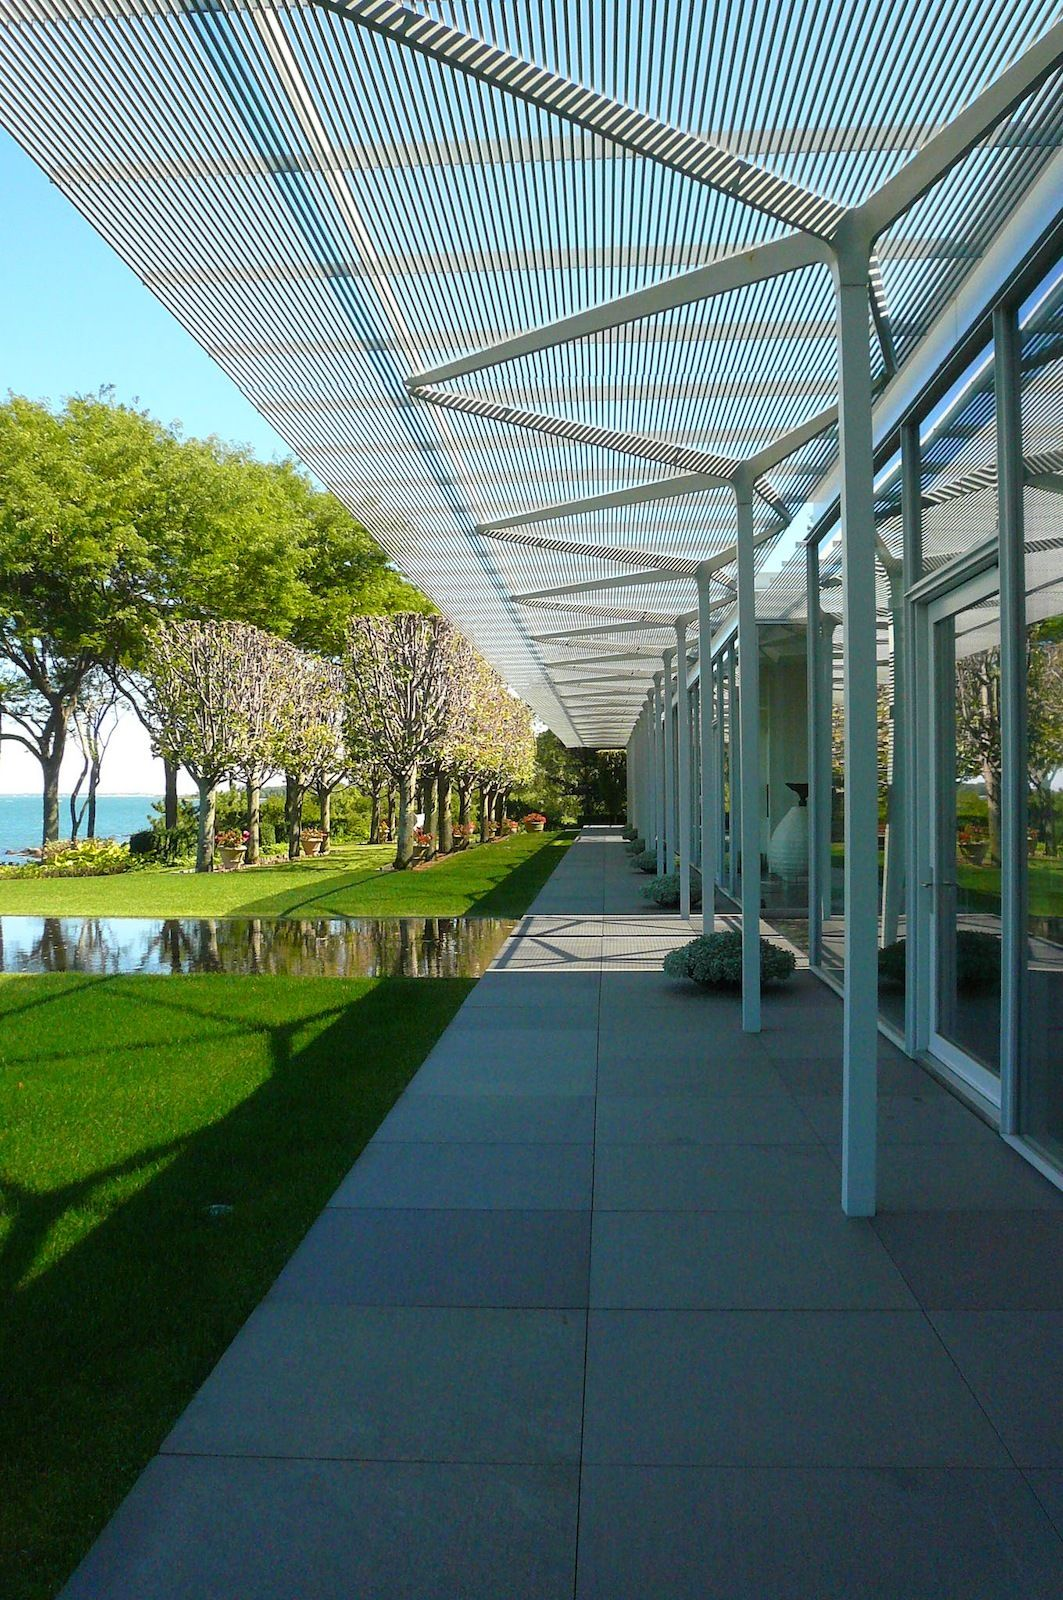 Visiting The Fishers Island House By Jaime Gillin Canopy Design Canopy Architecture Covered Walkway